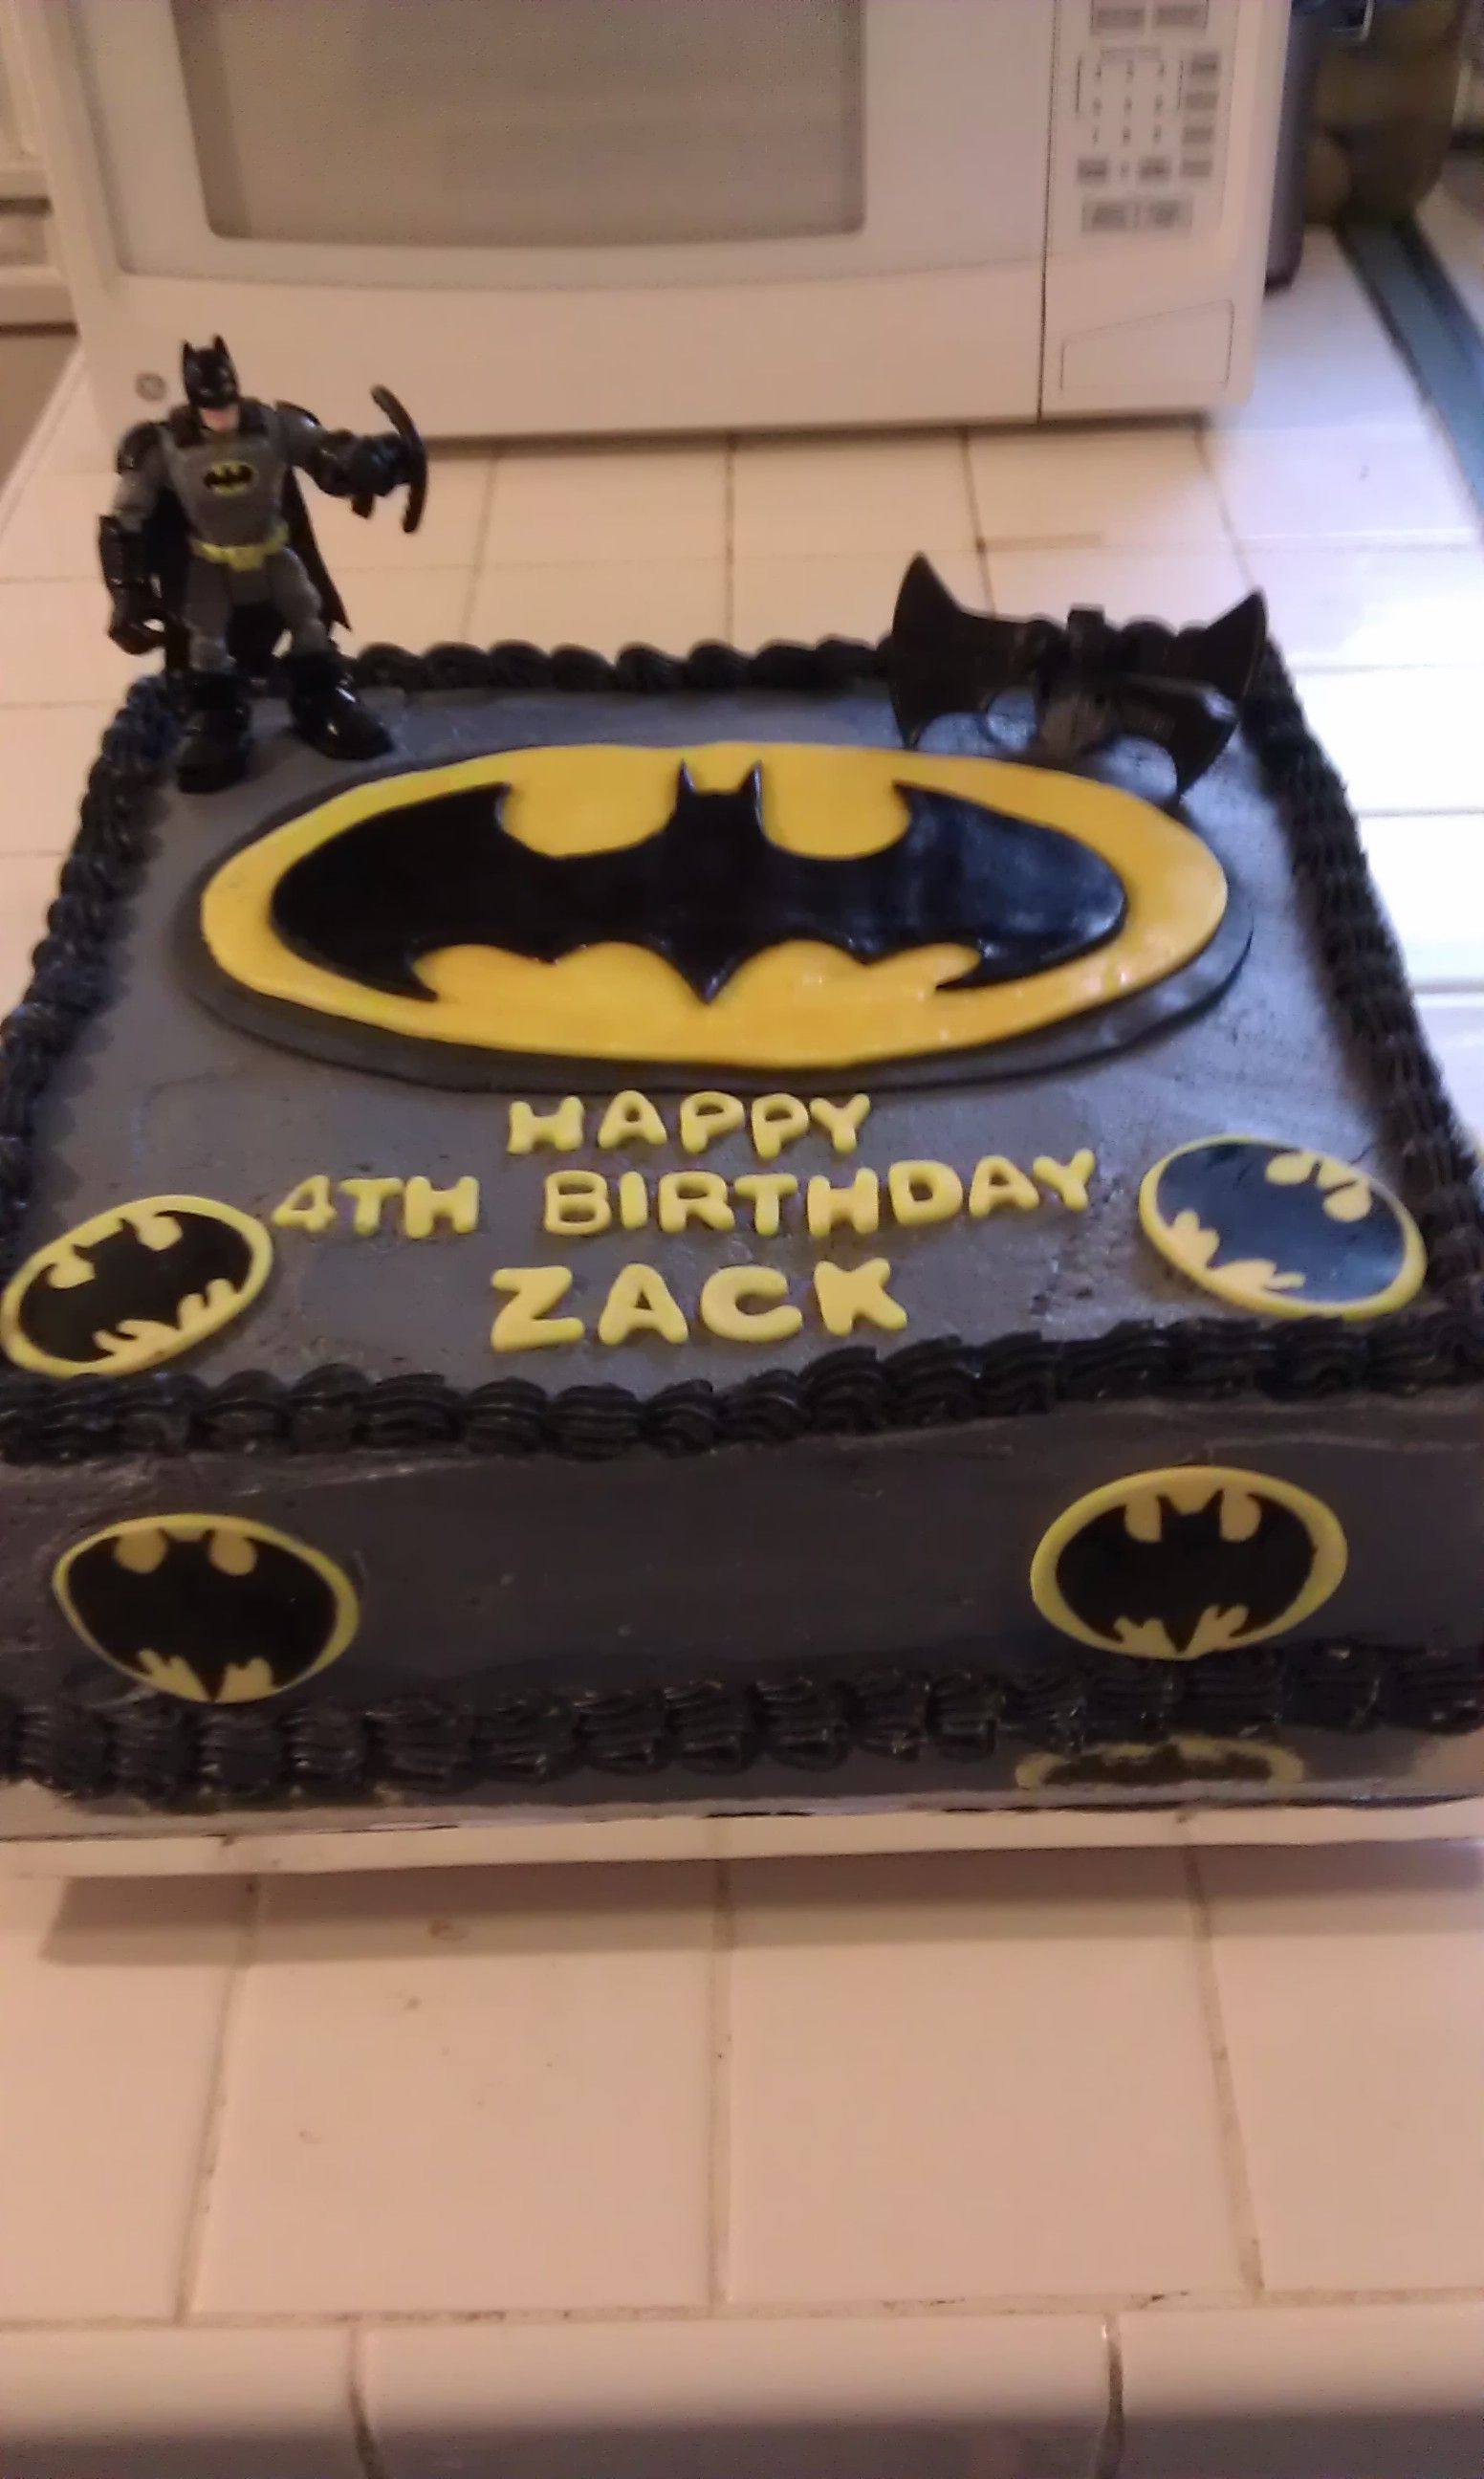 Batman cake yellow black background with yellow border Bday